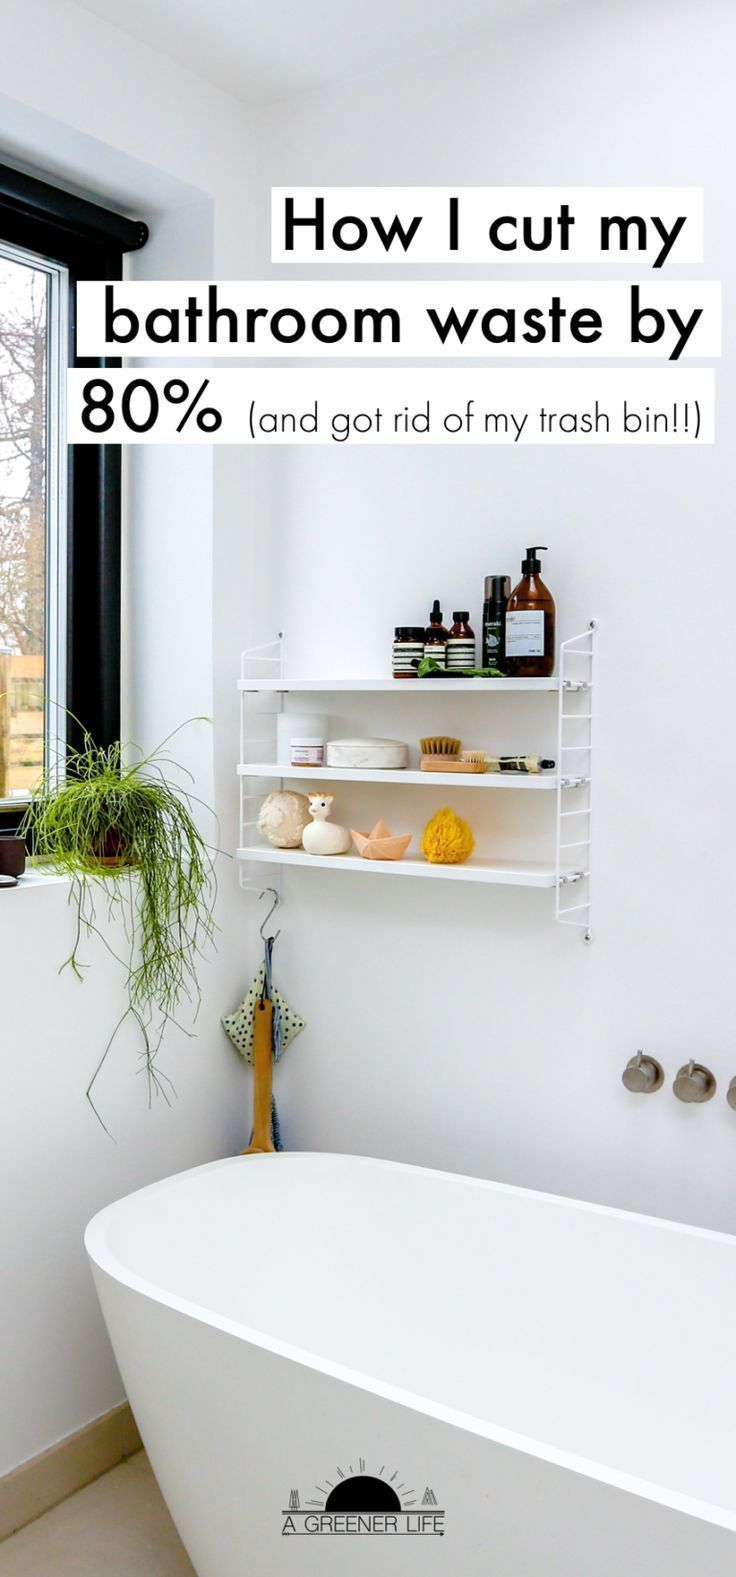 15 Zero-Waste Bathroom Swaps To make Today - A Greener life